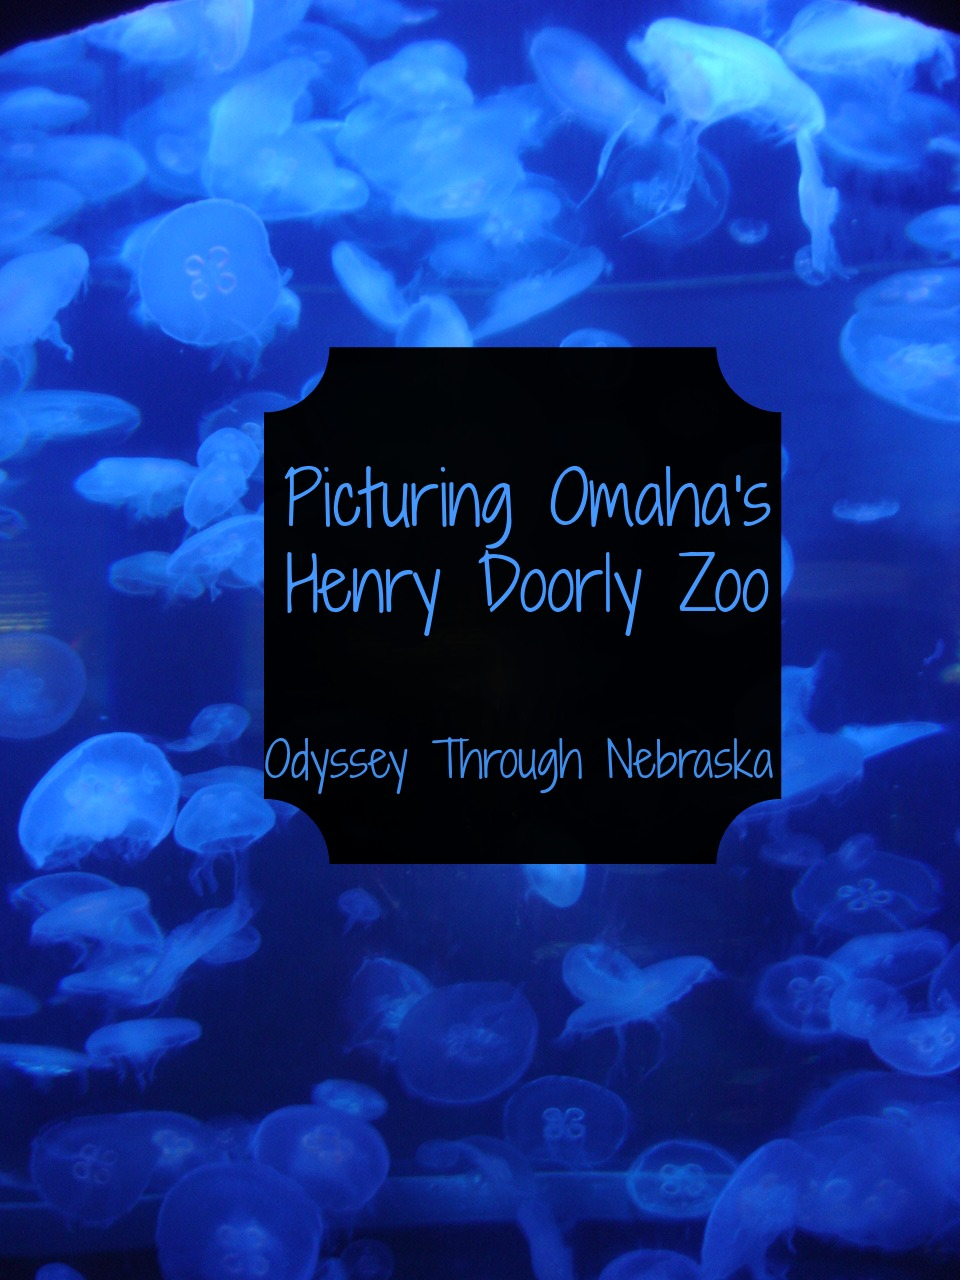 The Omaha Henry Doorly Zoo is one of the best in the world for its variety of animals and more